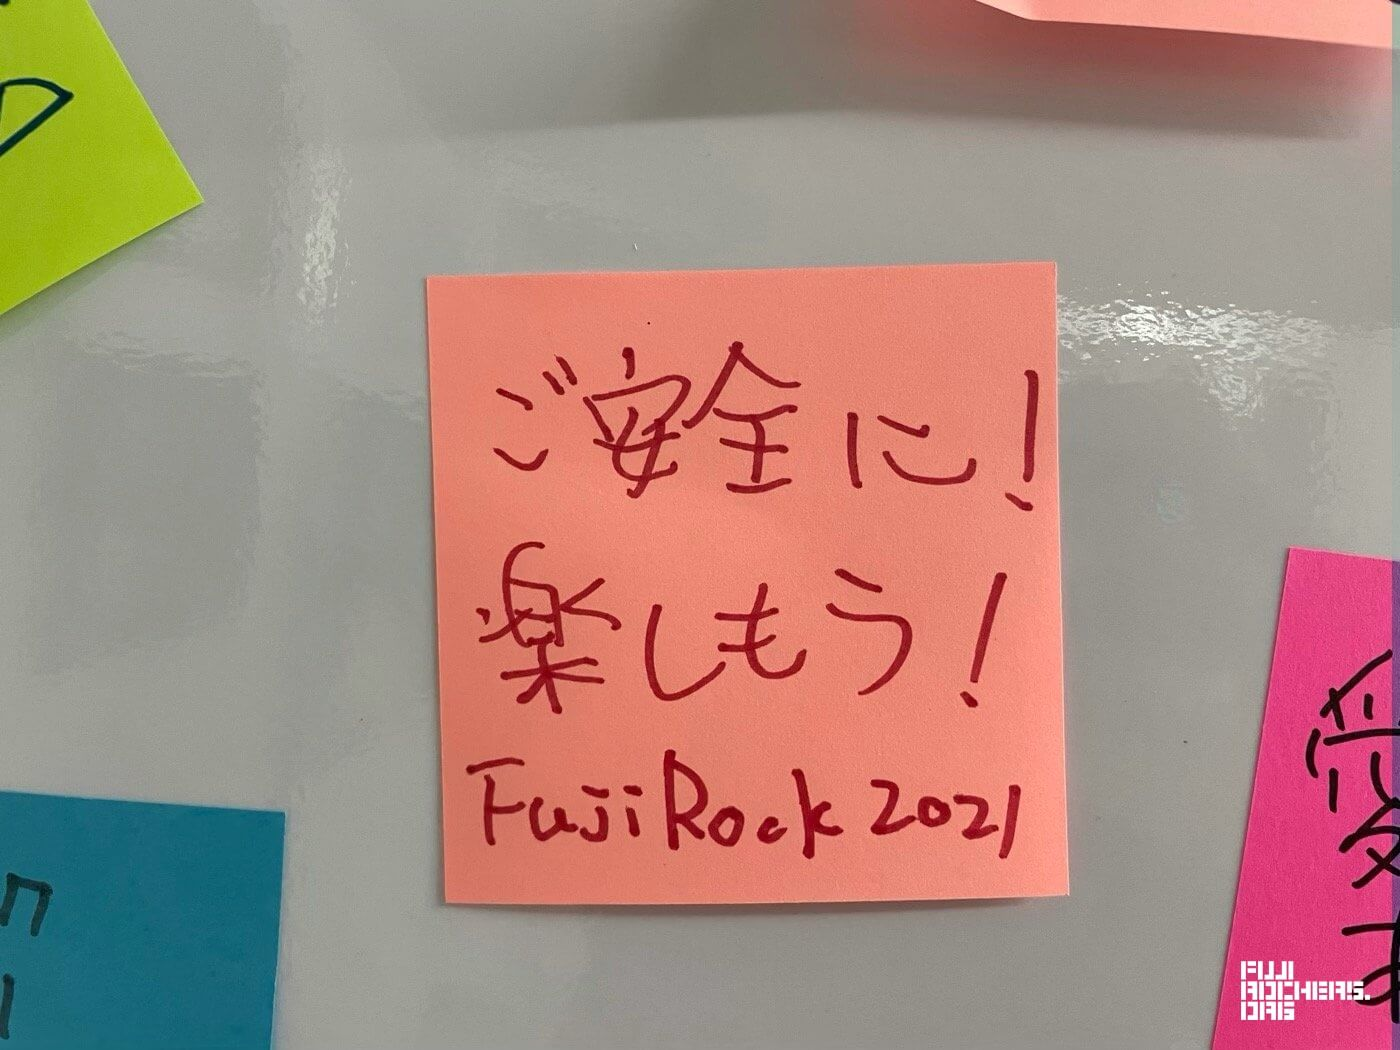 Message for FUJI ROCK #01